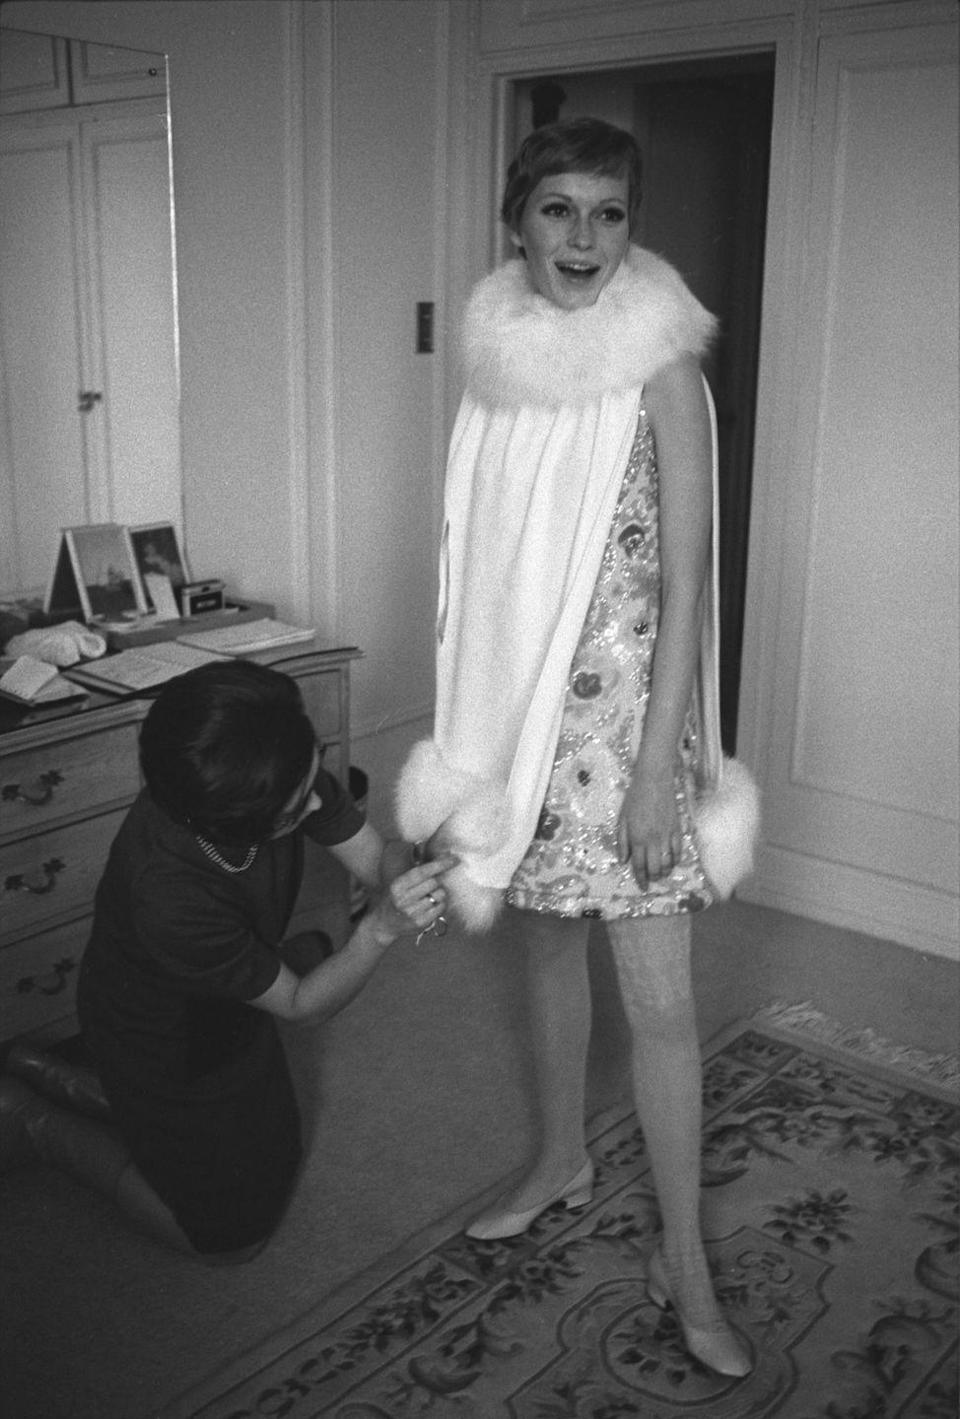 <p>Farrow during a costume fitting for <em>A Dandy in Aspic</em> in 1967. The film, released in 1968, was one of many projects Farrow starred in that year.</p>